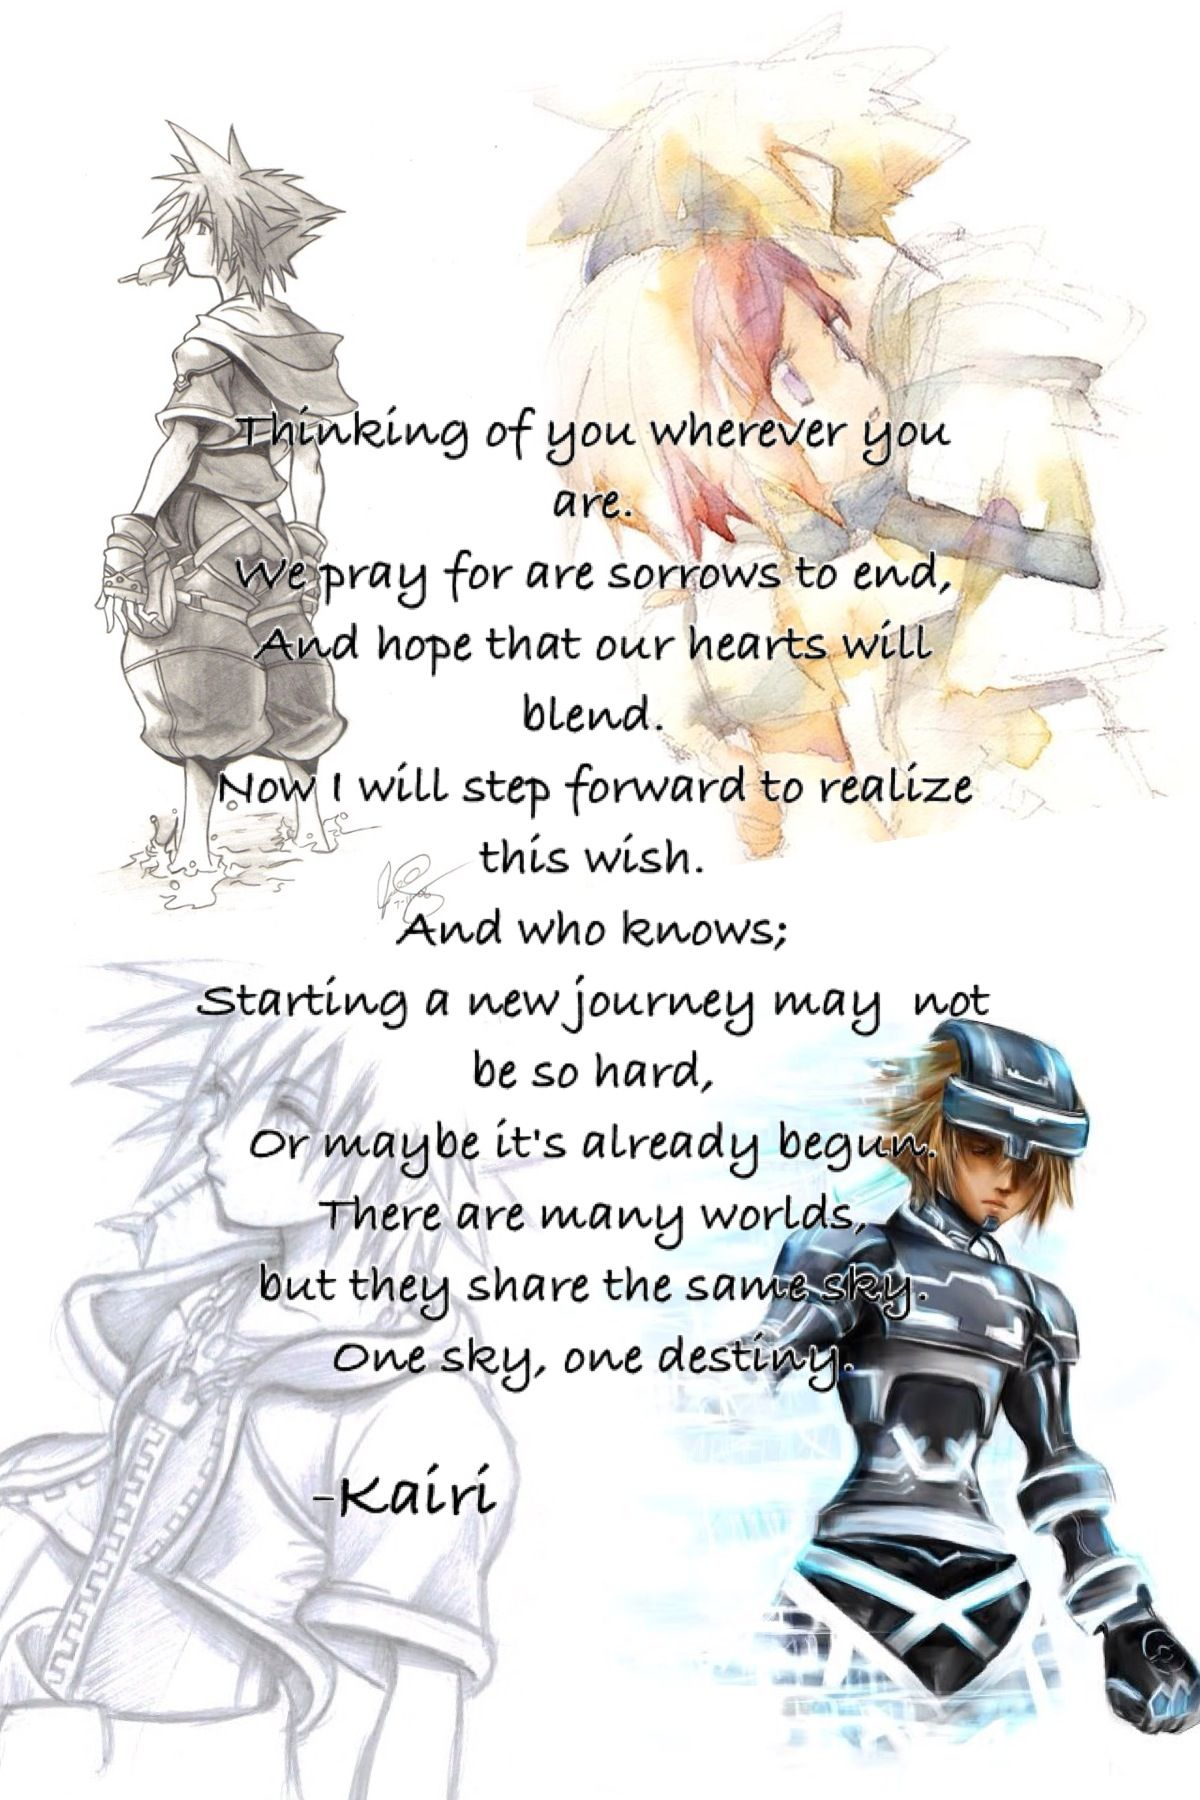 Kingdom Hearts Quotes Kingdom Hearts Ll  Video Games  Pinterest  Video Game Gaming